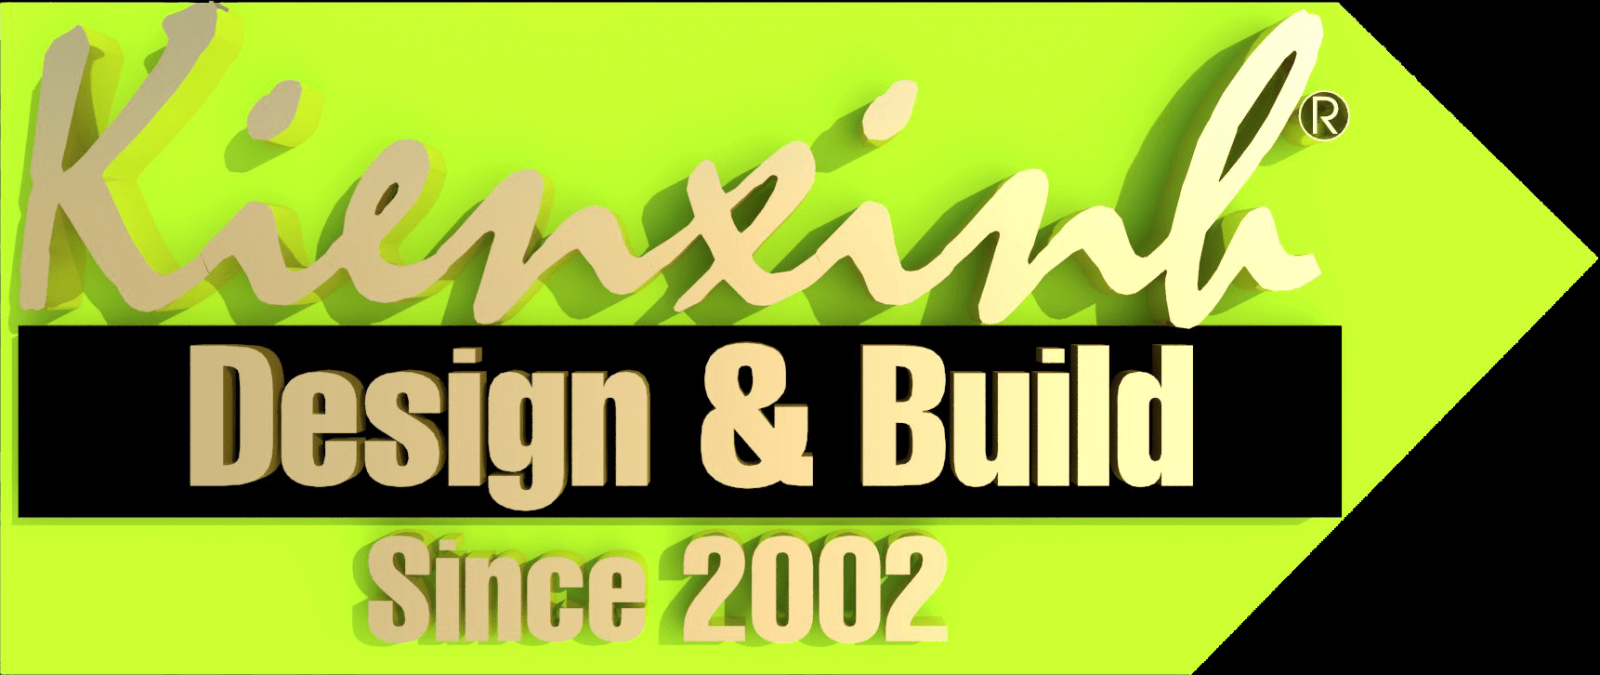 Kienxinh Design & Build since 2002